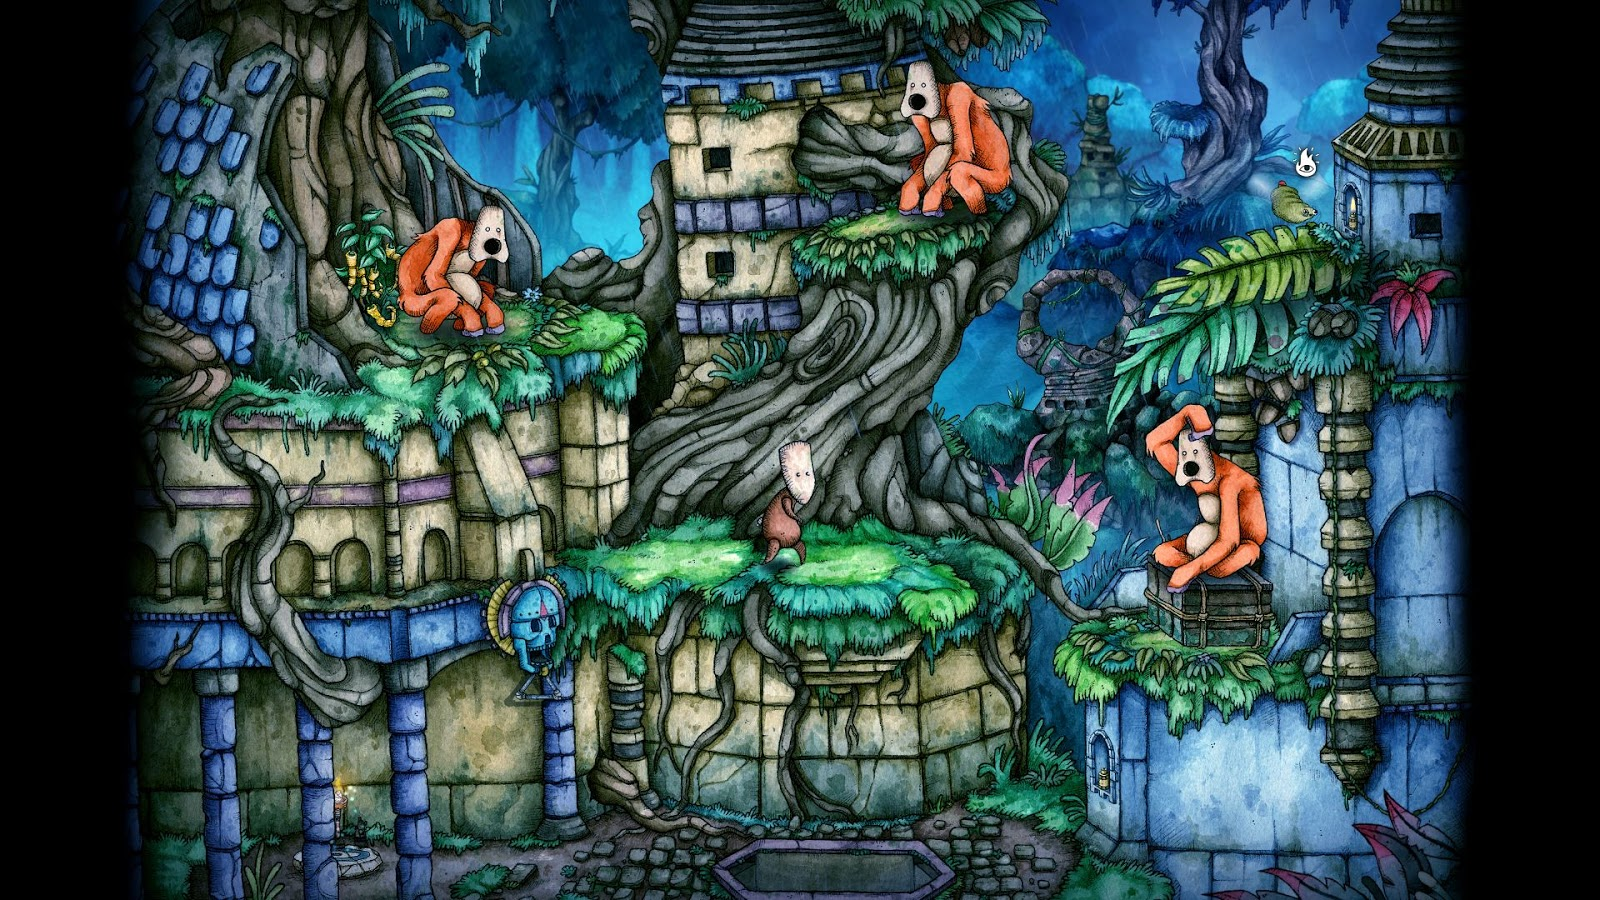 Candle PC Game Free Download Full Version Full Version